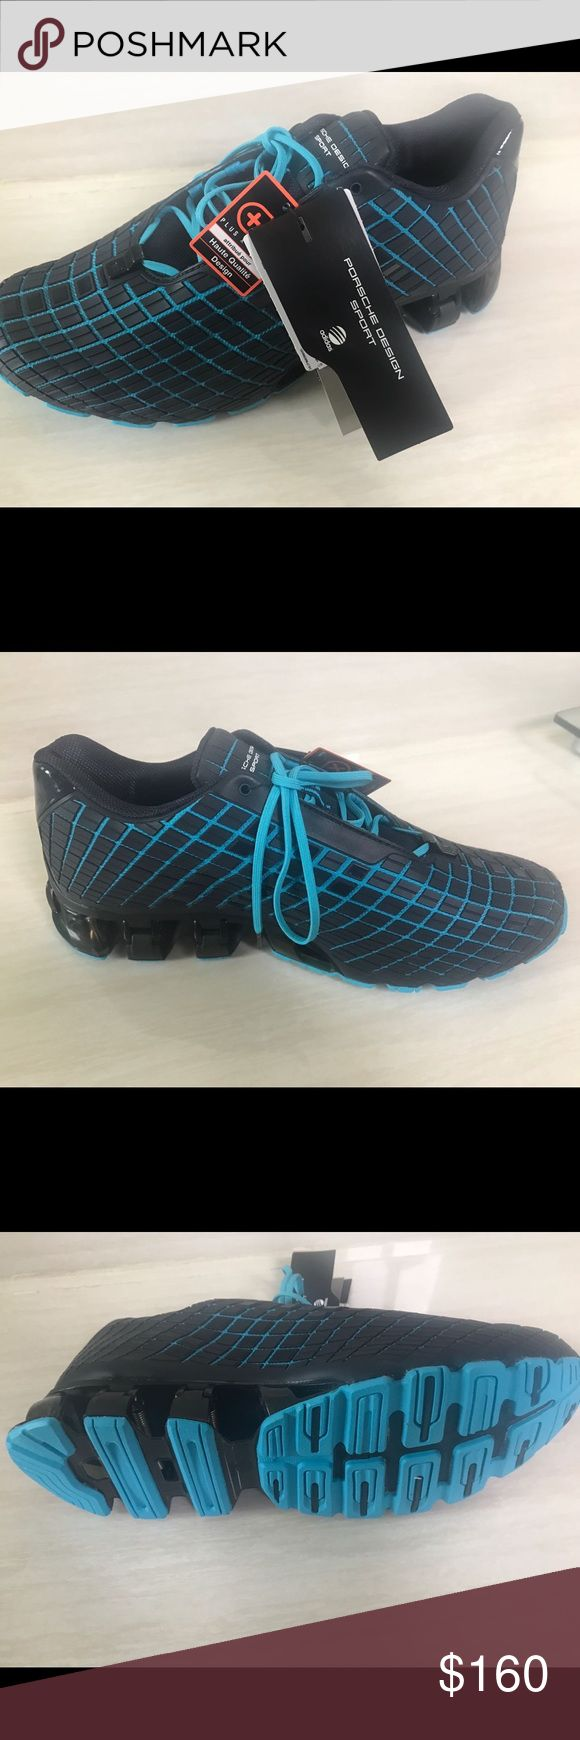 Sneakers Porsche X Award Adidas Sneakers New Never used. Porsche X award Adidas. Original price $380. 00 Isell it for only $160.00. Size 40. adidas Shoes Athletic Shoes